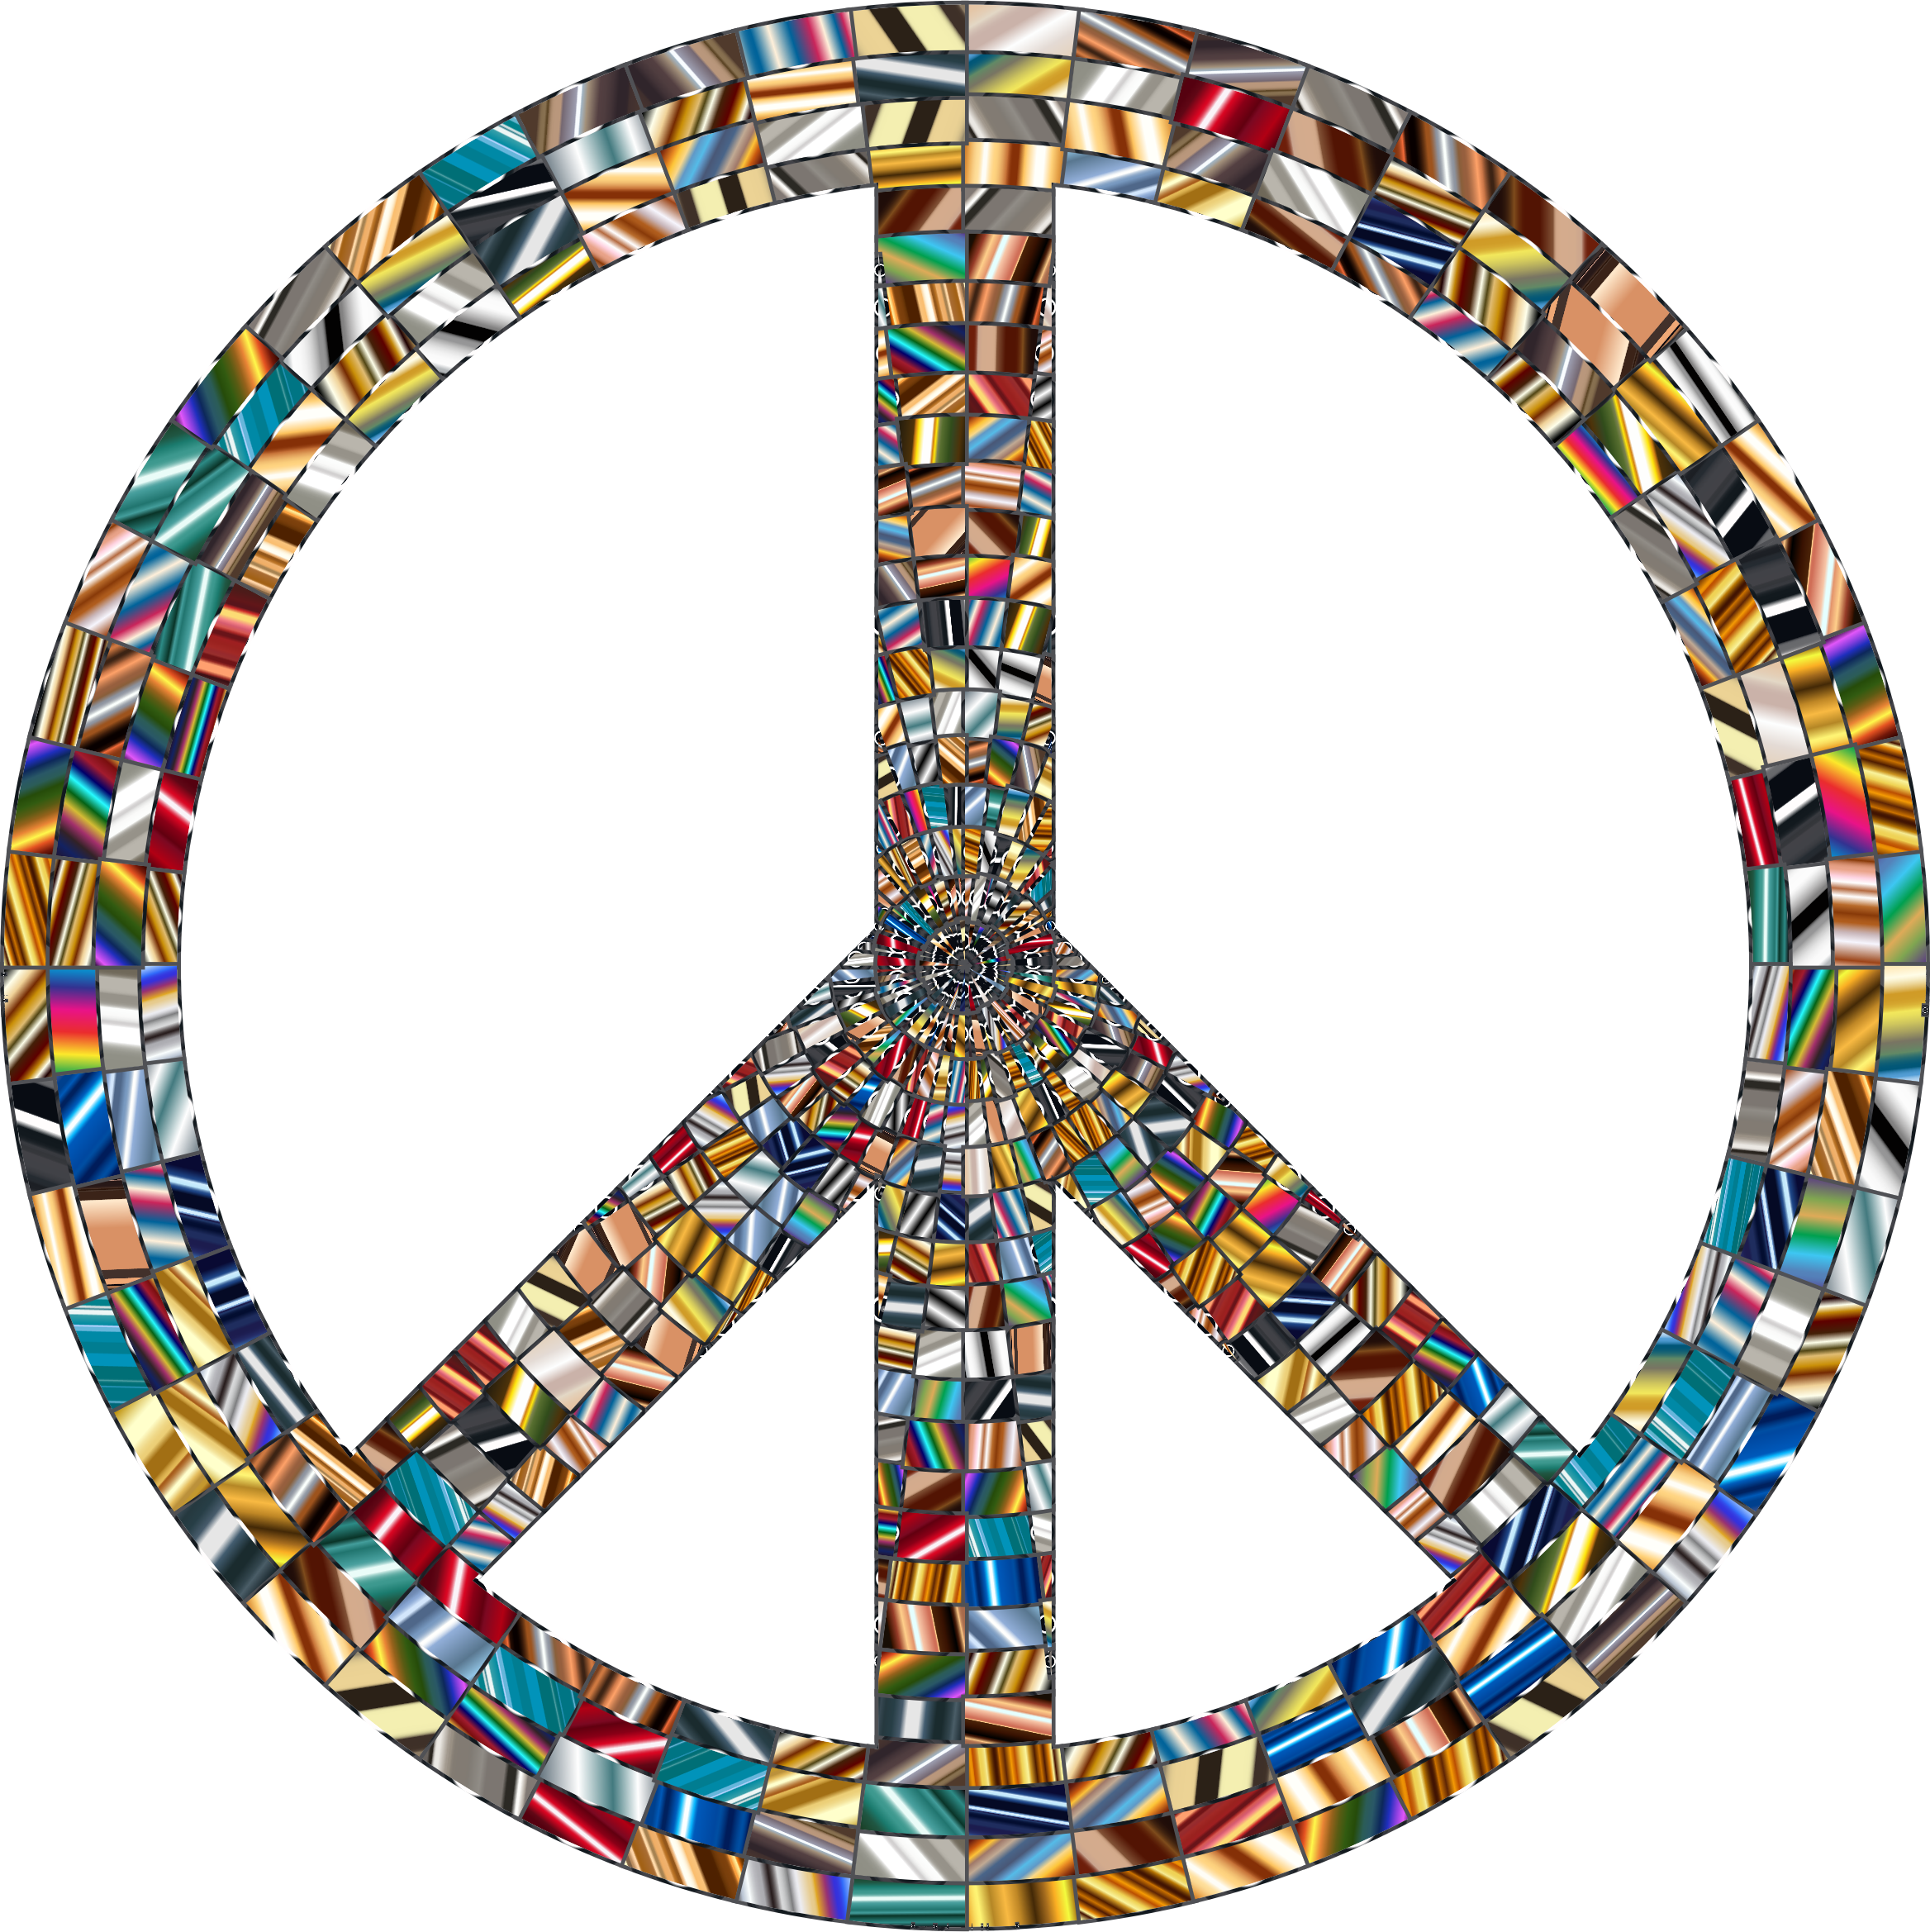 Peace clipart psychedelic flower. Symbol backgrounds